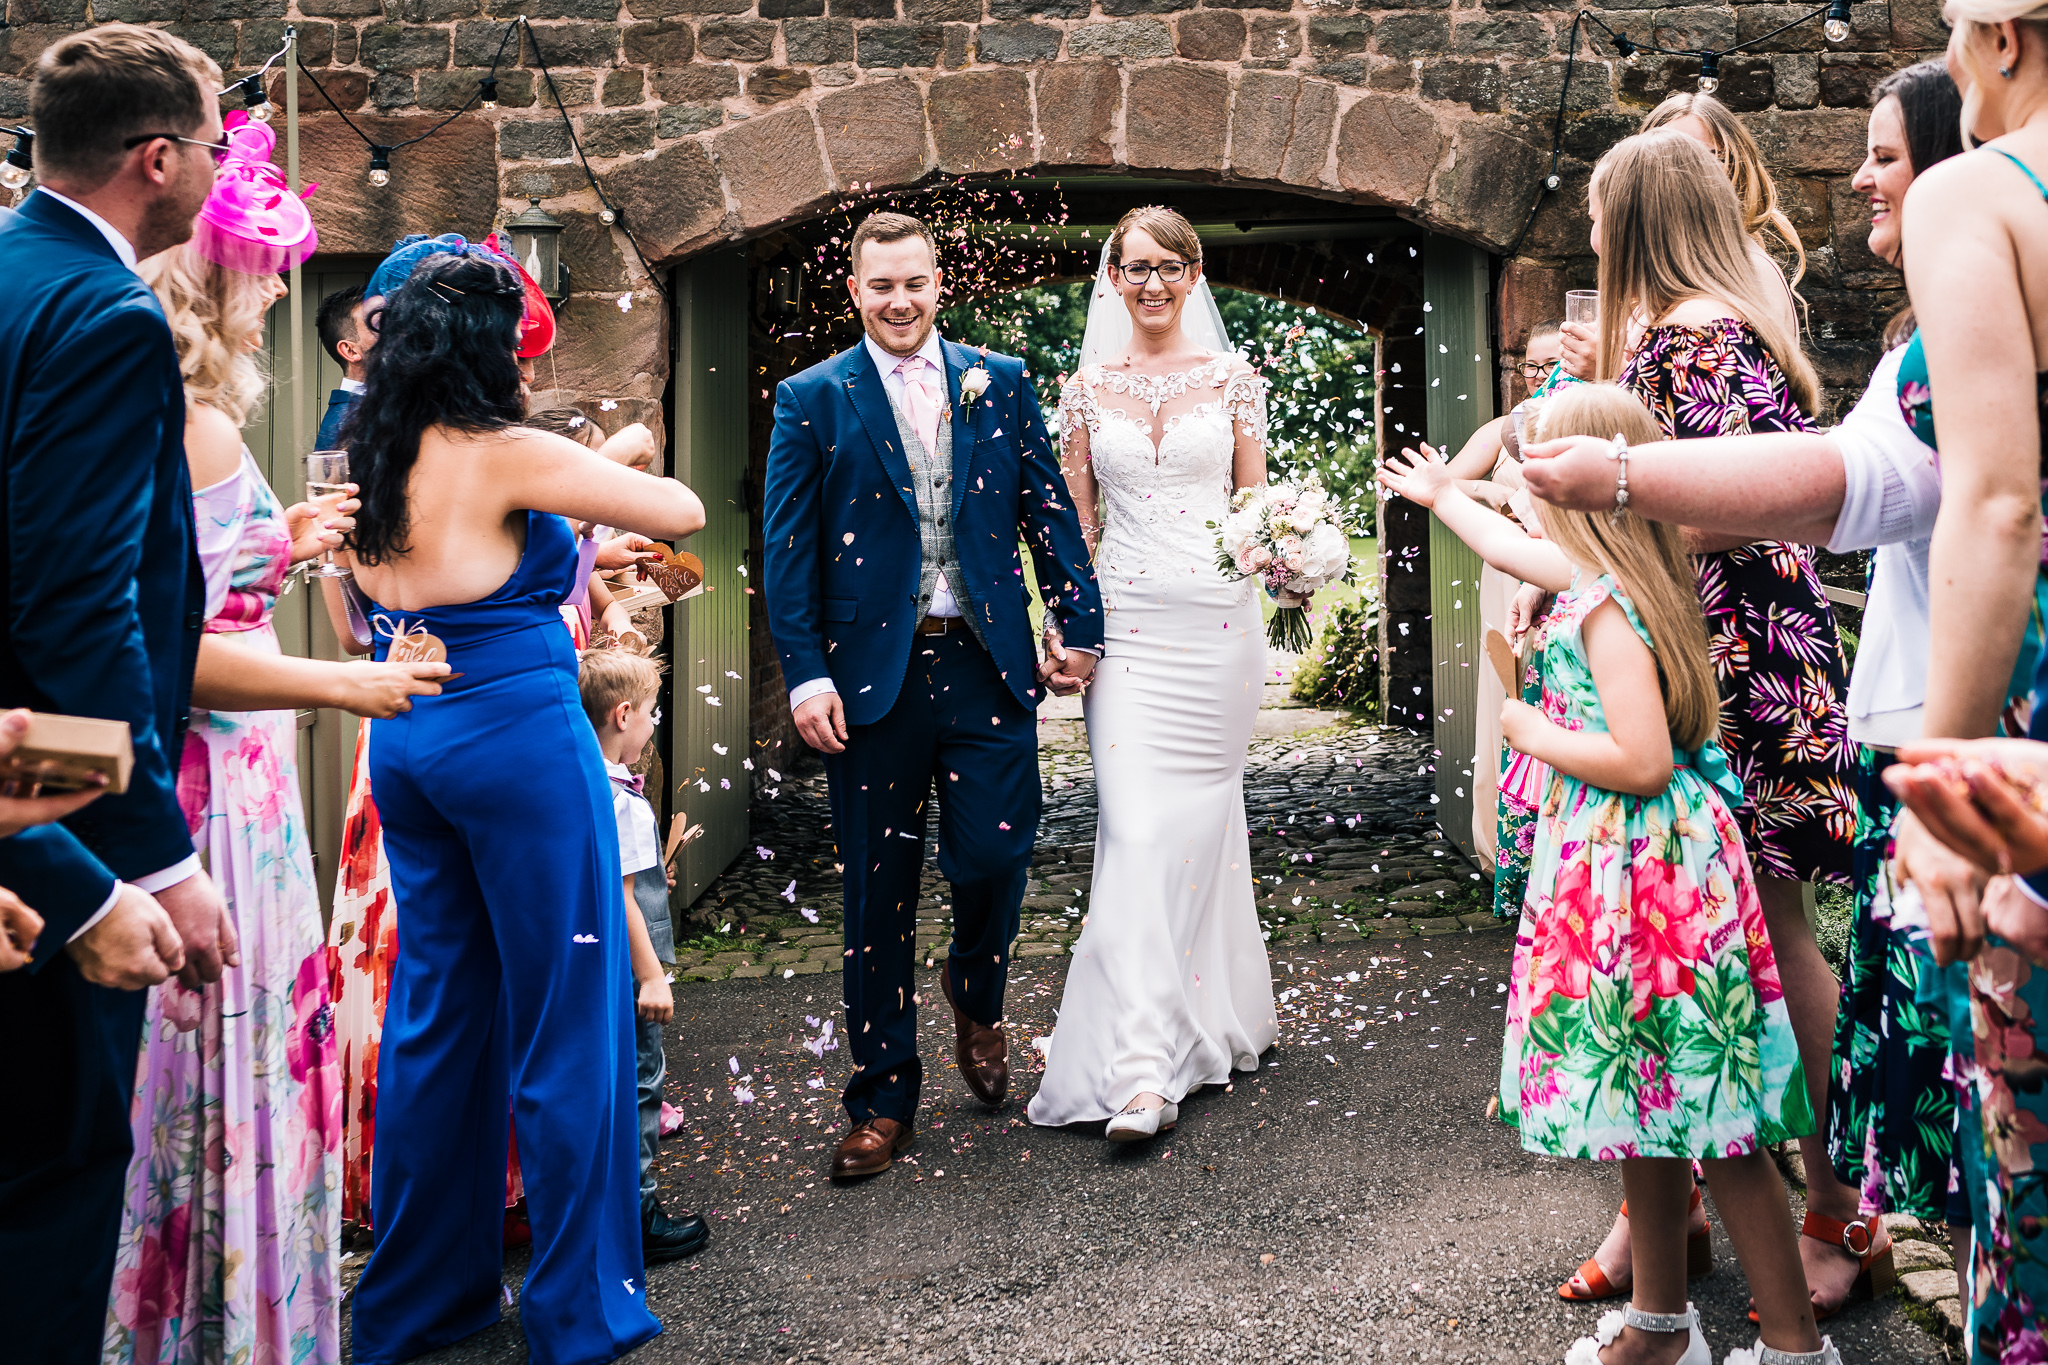 JUST MARRIED CONFETTI PICTURE AT THE ASHES BARN WEDDING VENUE